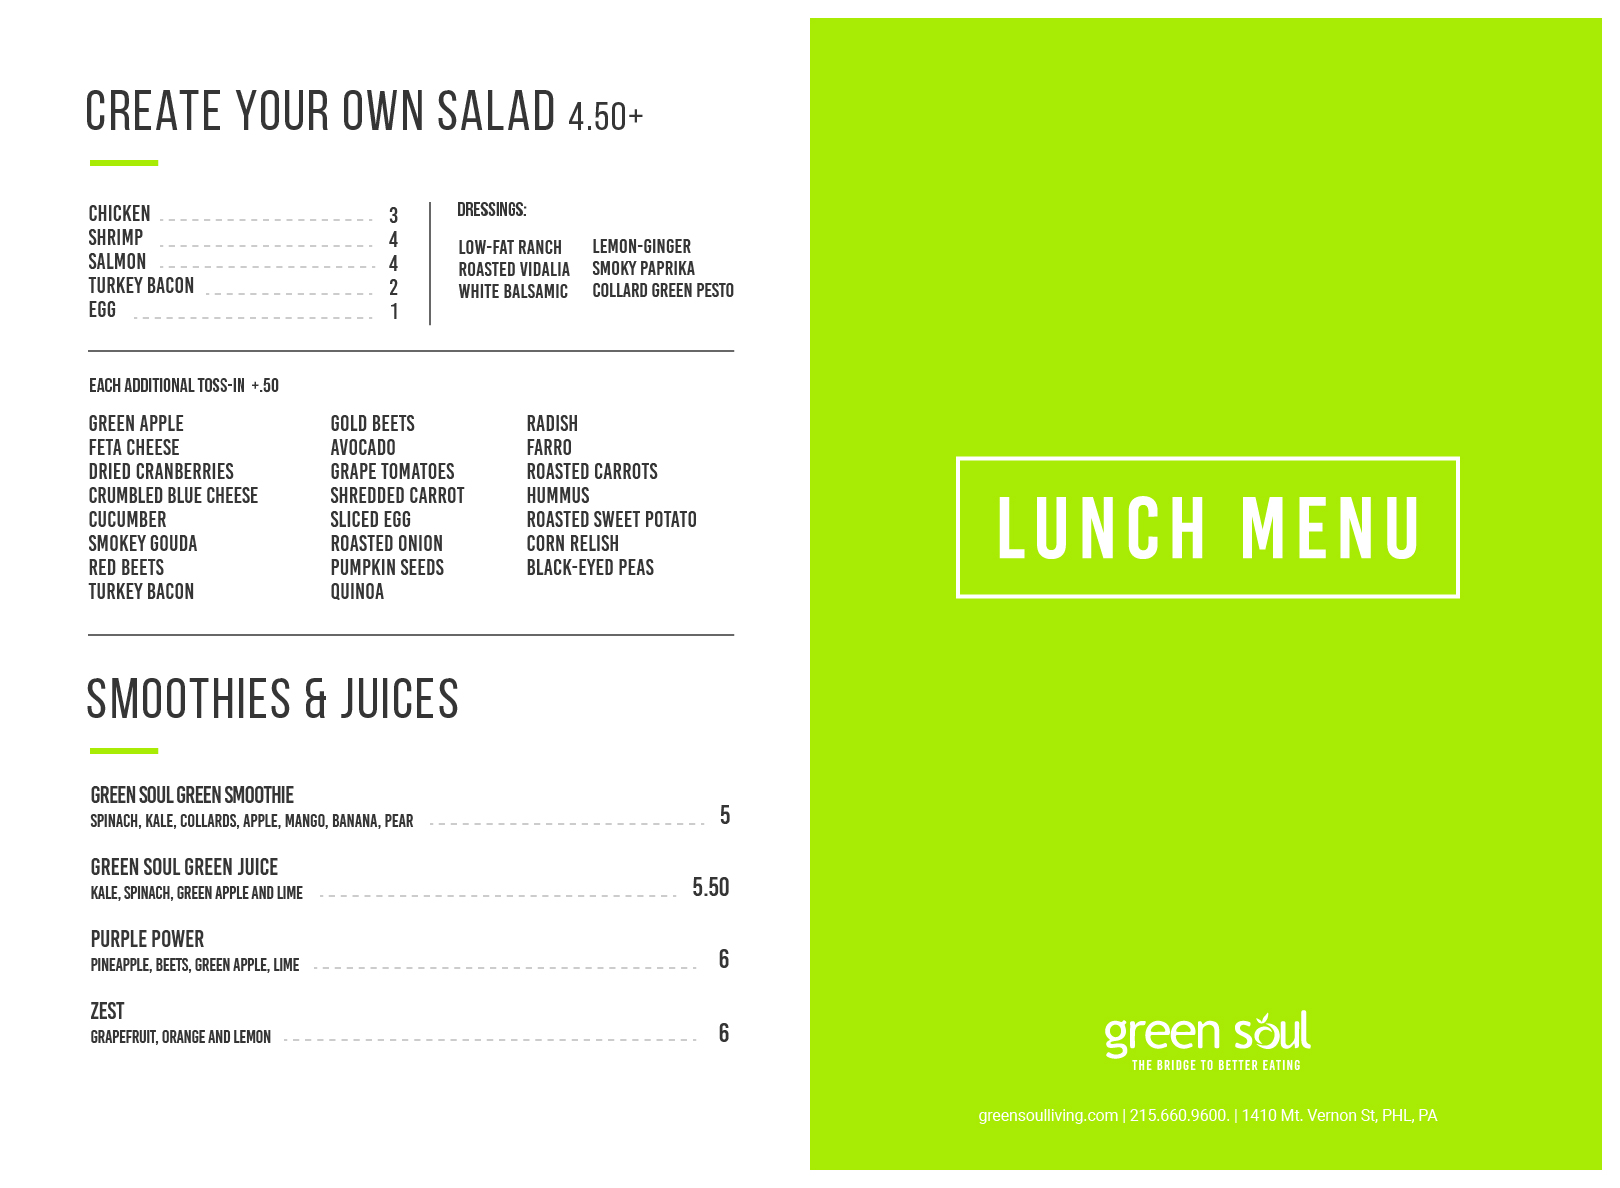 GREEN_SOUL_LUNCH_MENU2x-100